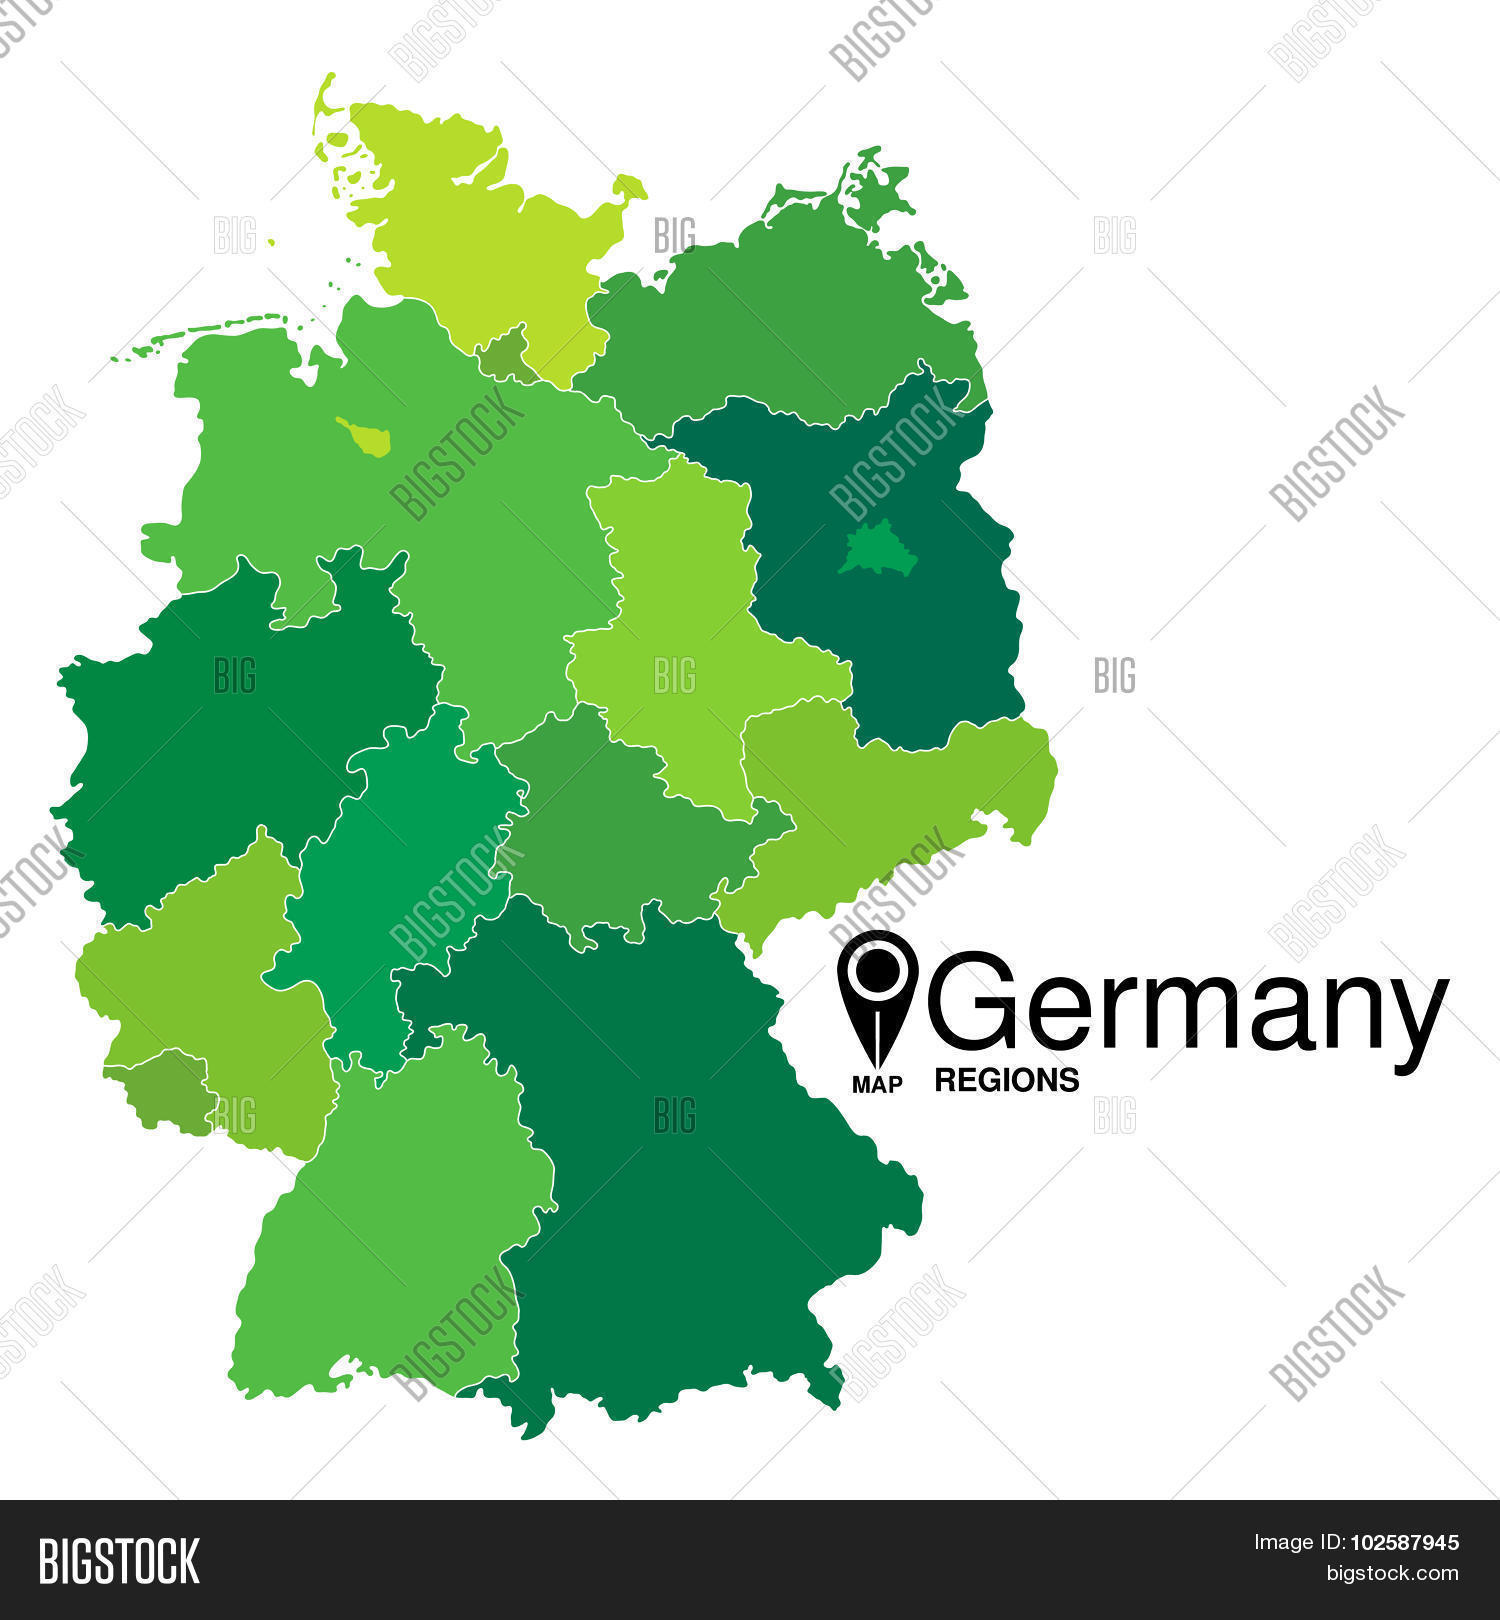 Map Of Germany Regions.Regions Map Germany Vector Photo Free Trial Bigstock